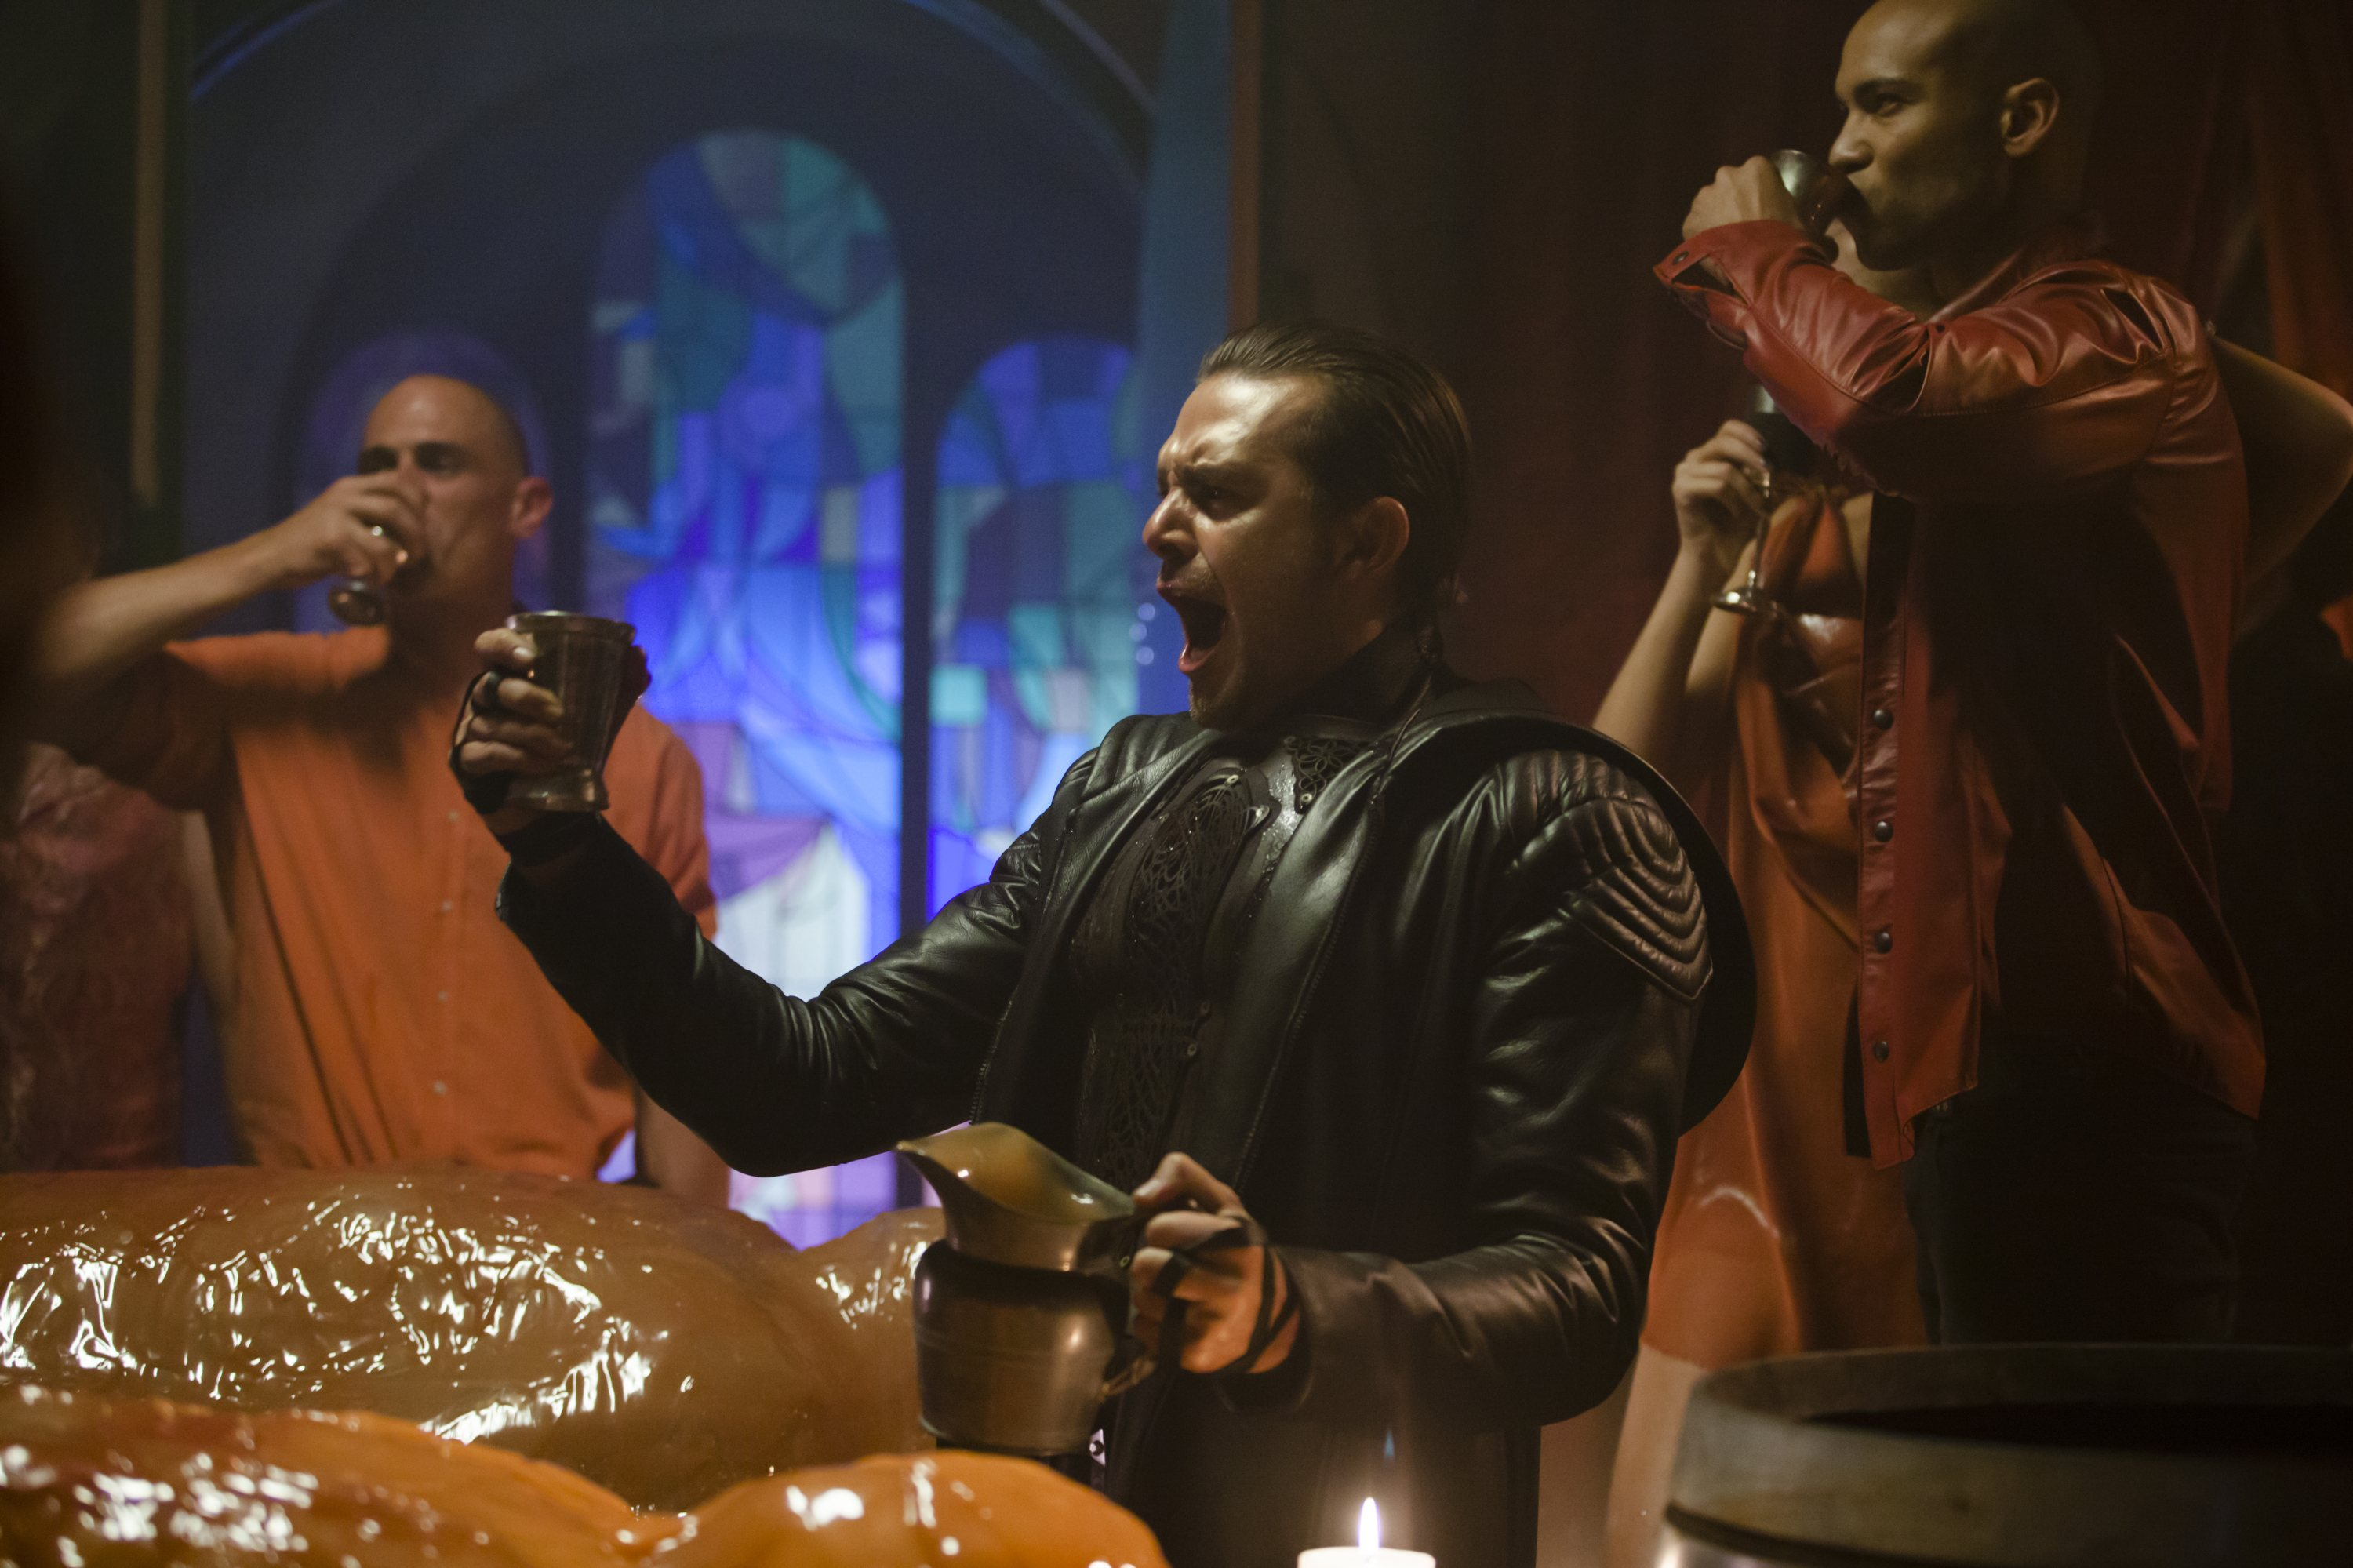 Dominion: una scena dell'episodio Godspeed